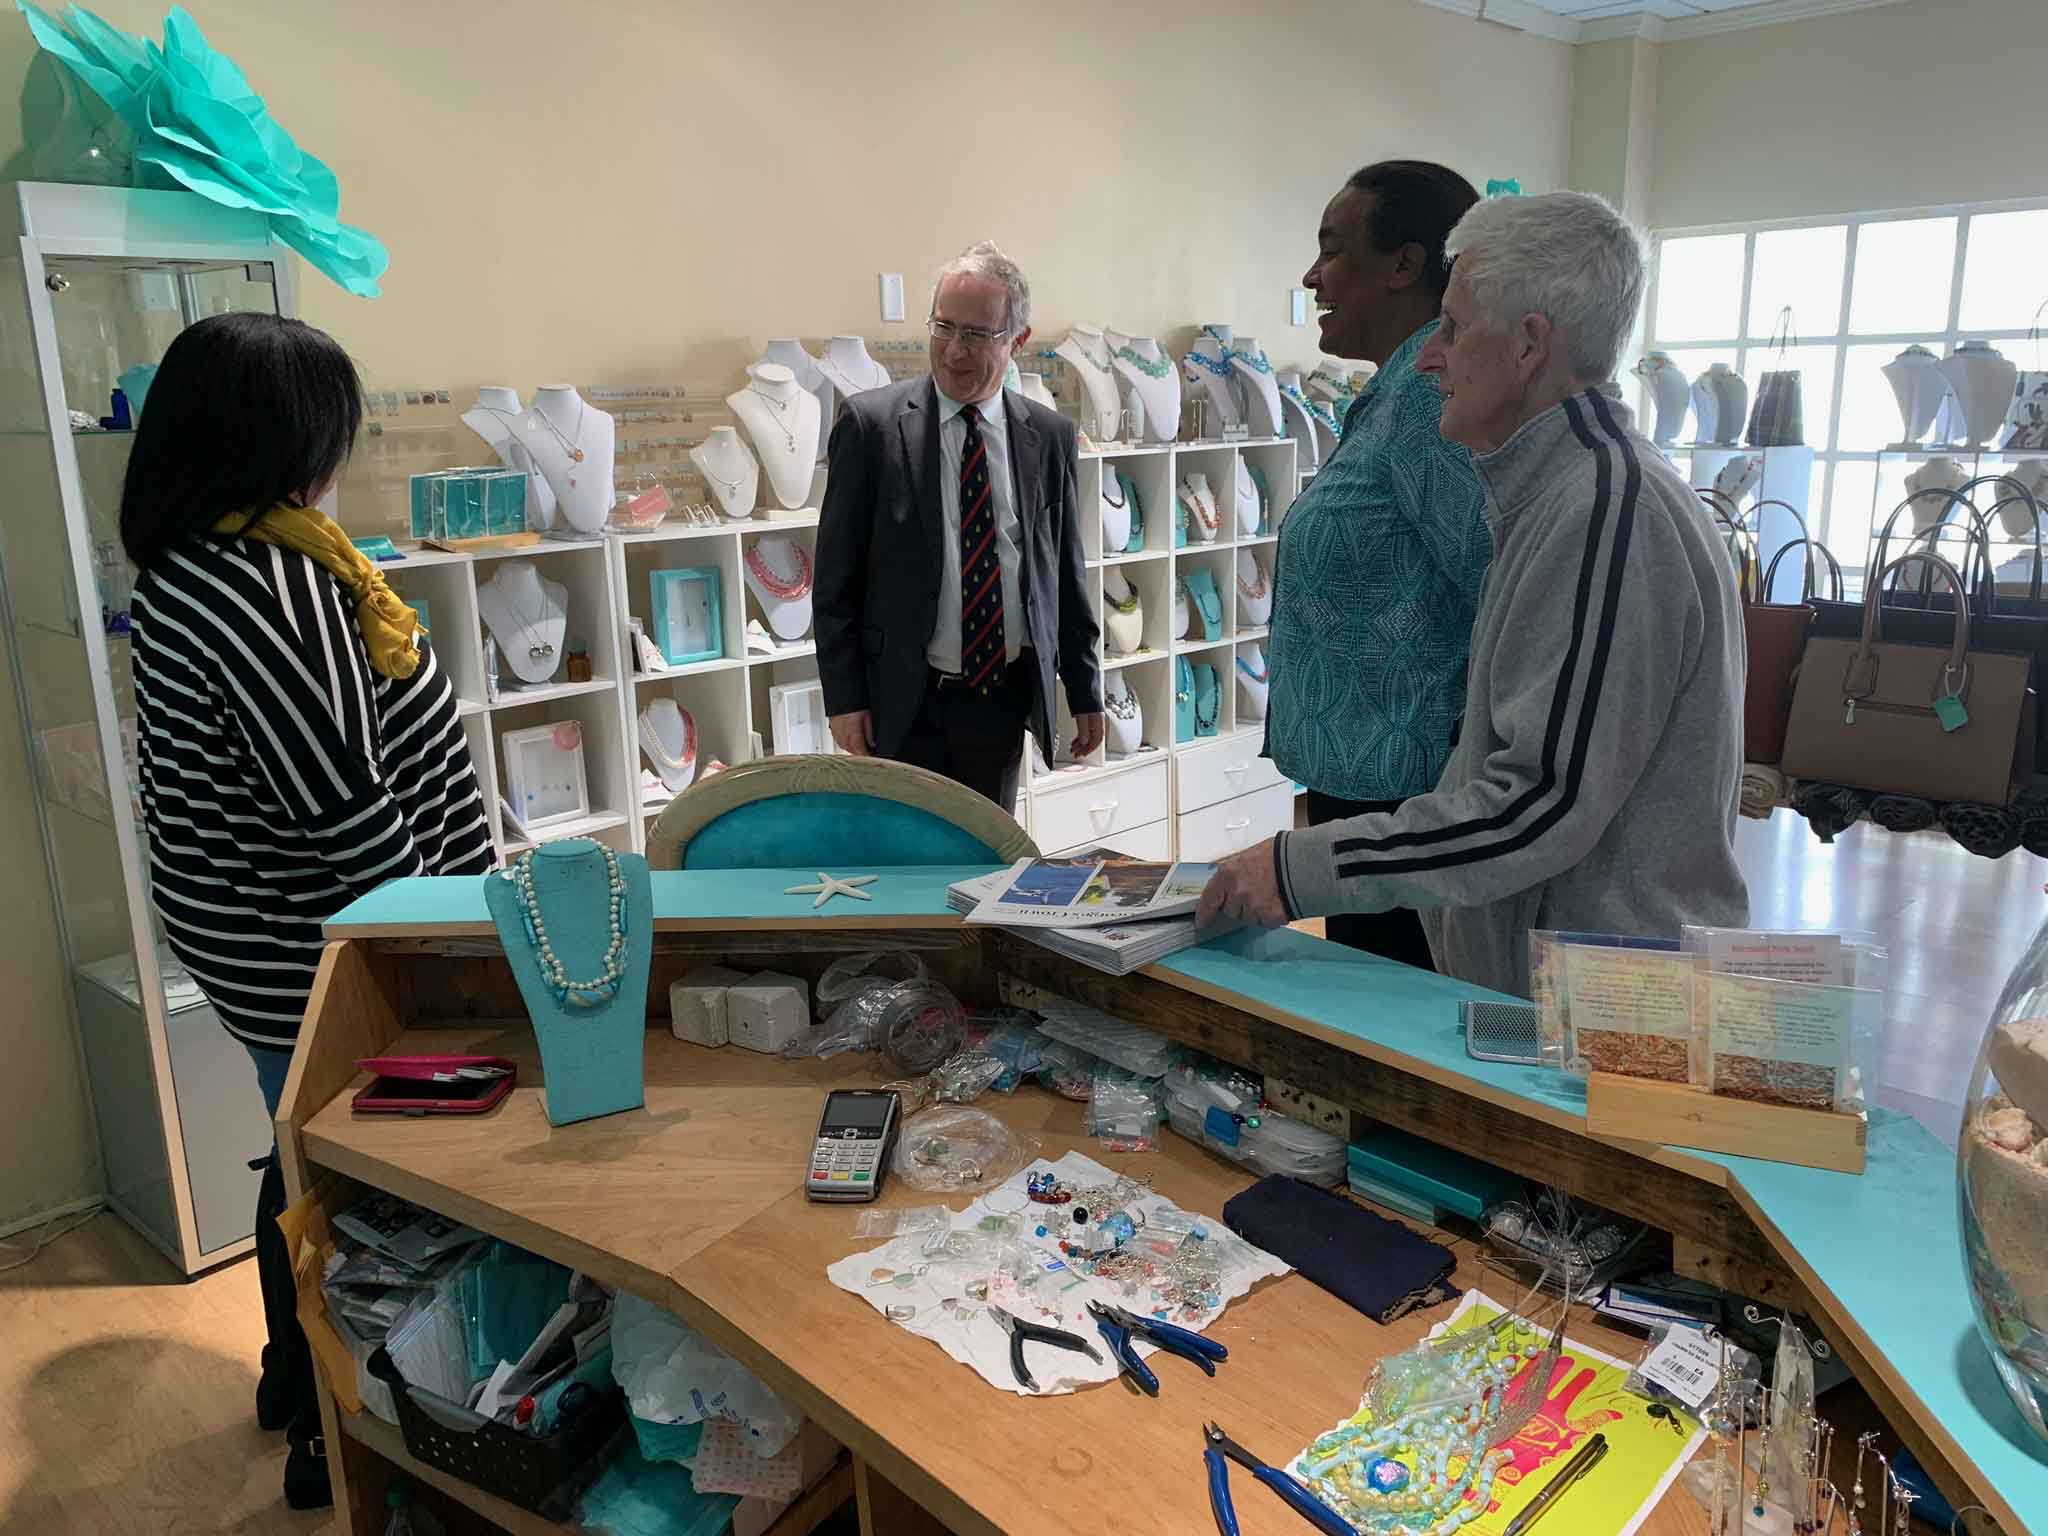 Governor visits Saltwater Jewelry